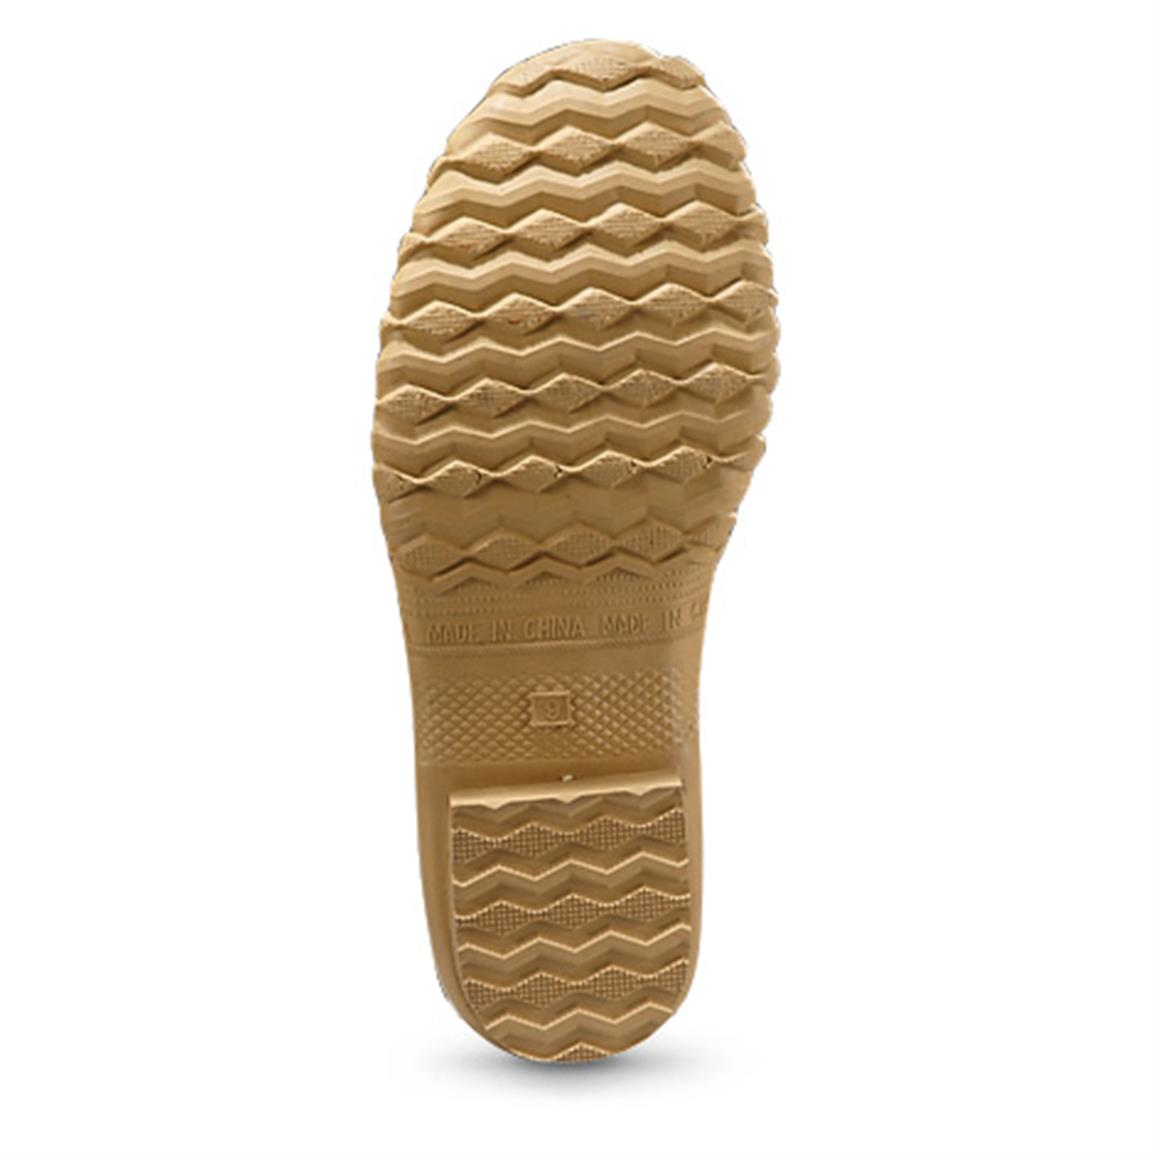 Lightweight outsole gives you slip-resistant traction on snow or ice